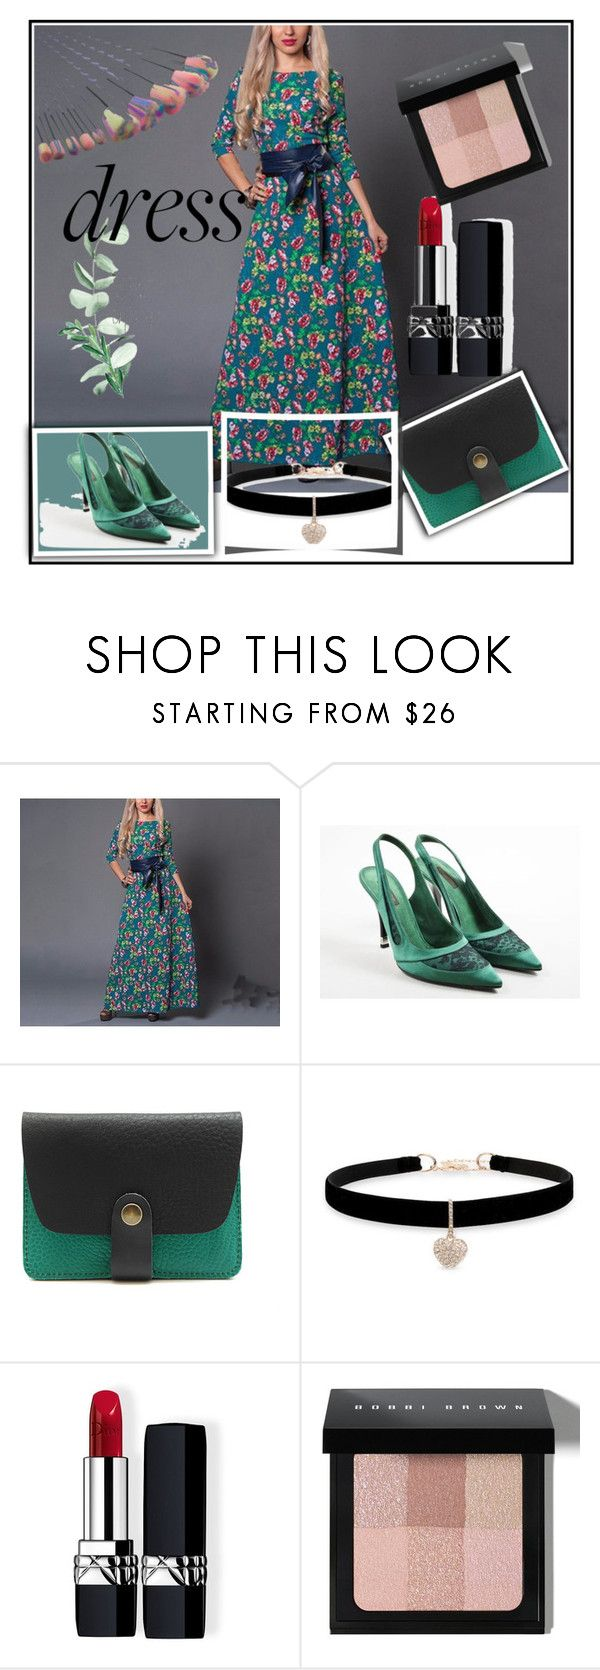 """""""#dreamydresses"""" by lejla150 ❤ liked on Polyvore featuring Louis Vuitton, Betsey Johnson, Christian Dior, Bobbi Brown Cosmetics and dreamydresses"""